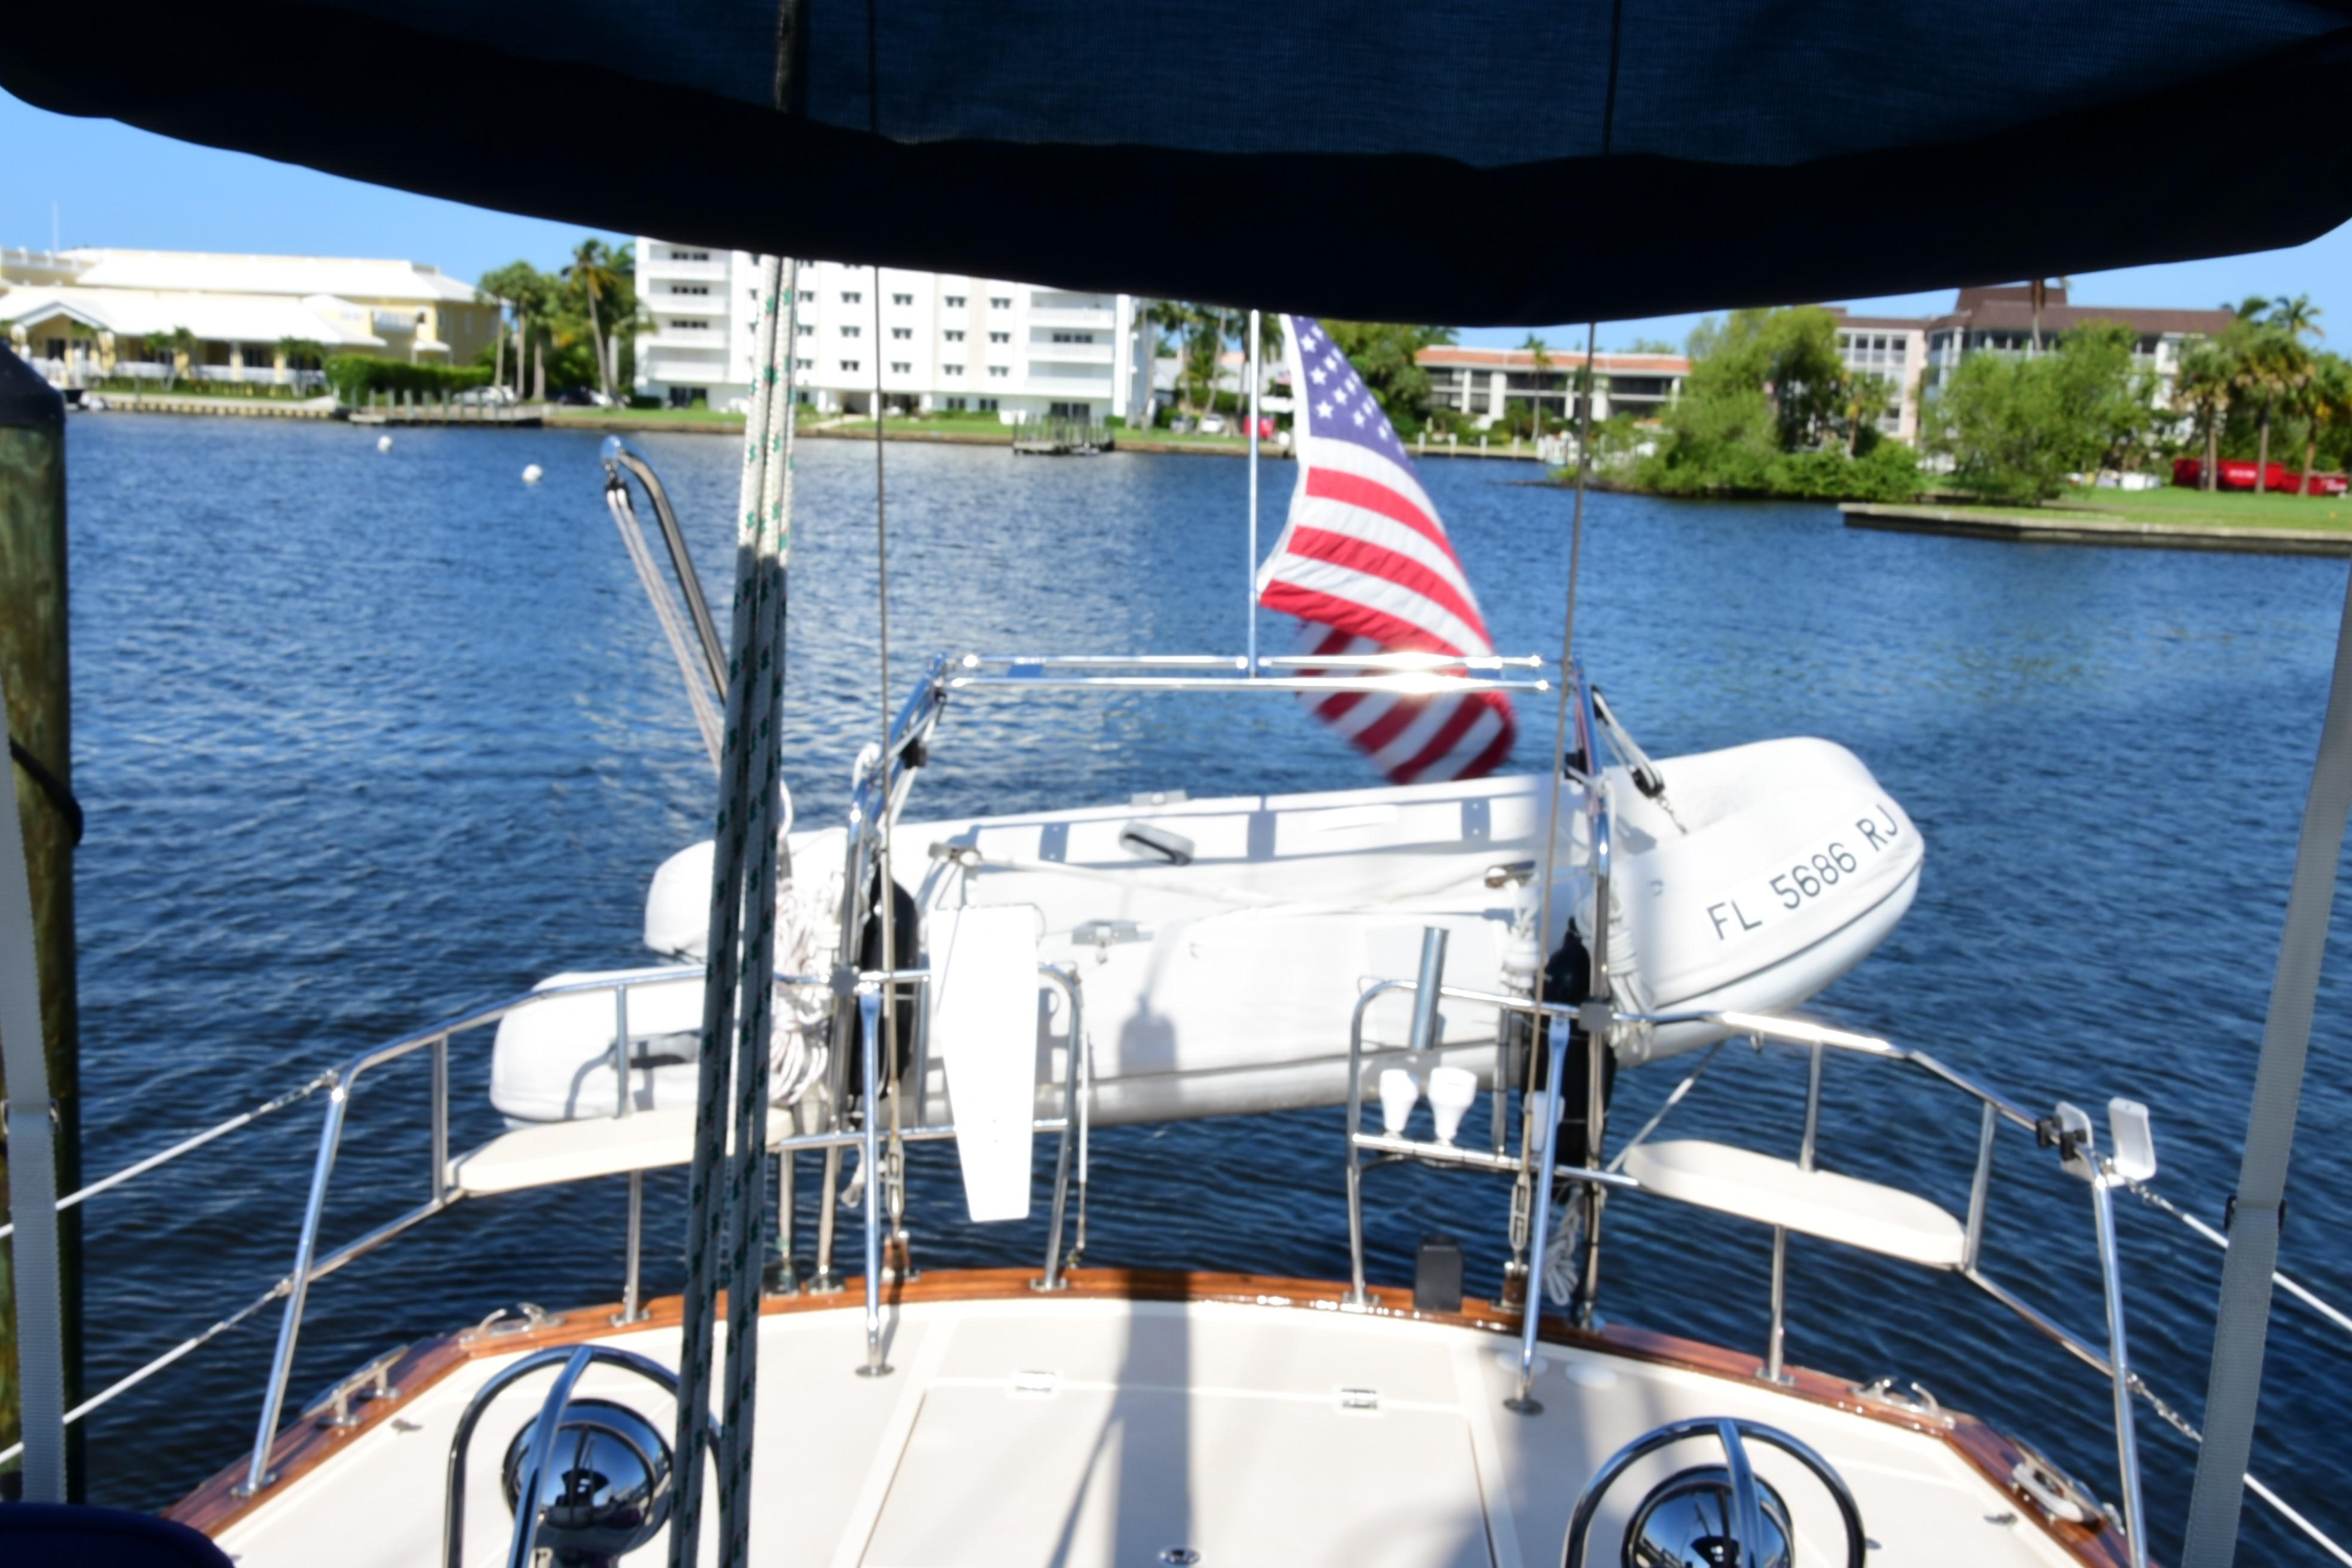 DINGHY AND DAVITS